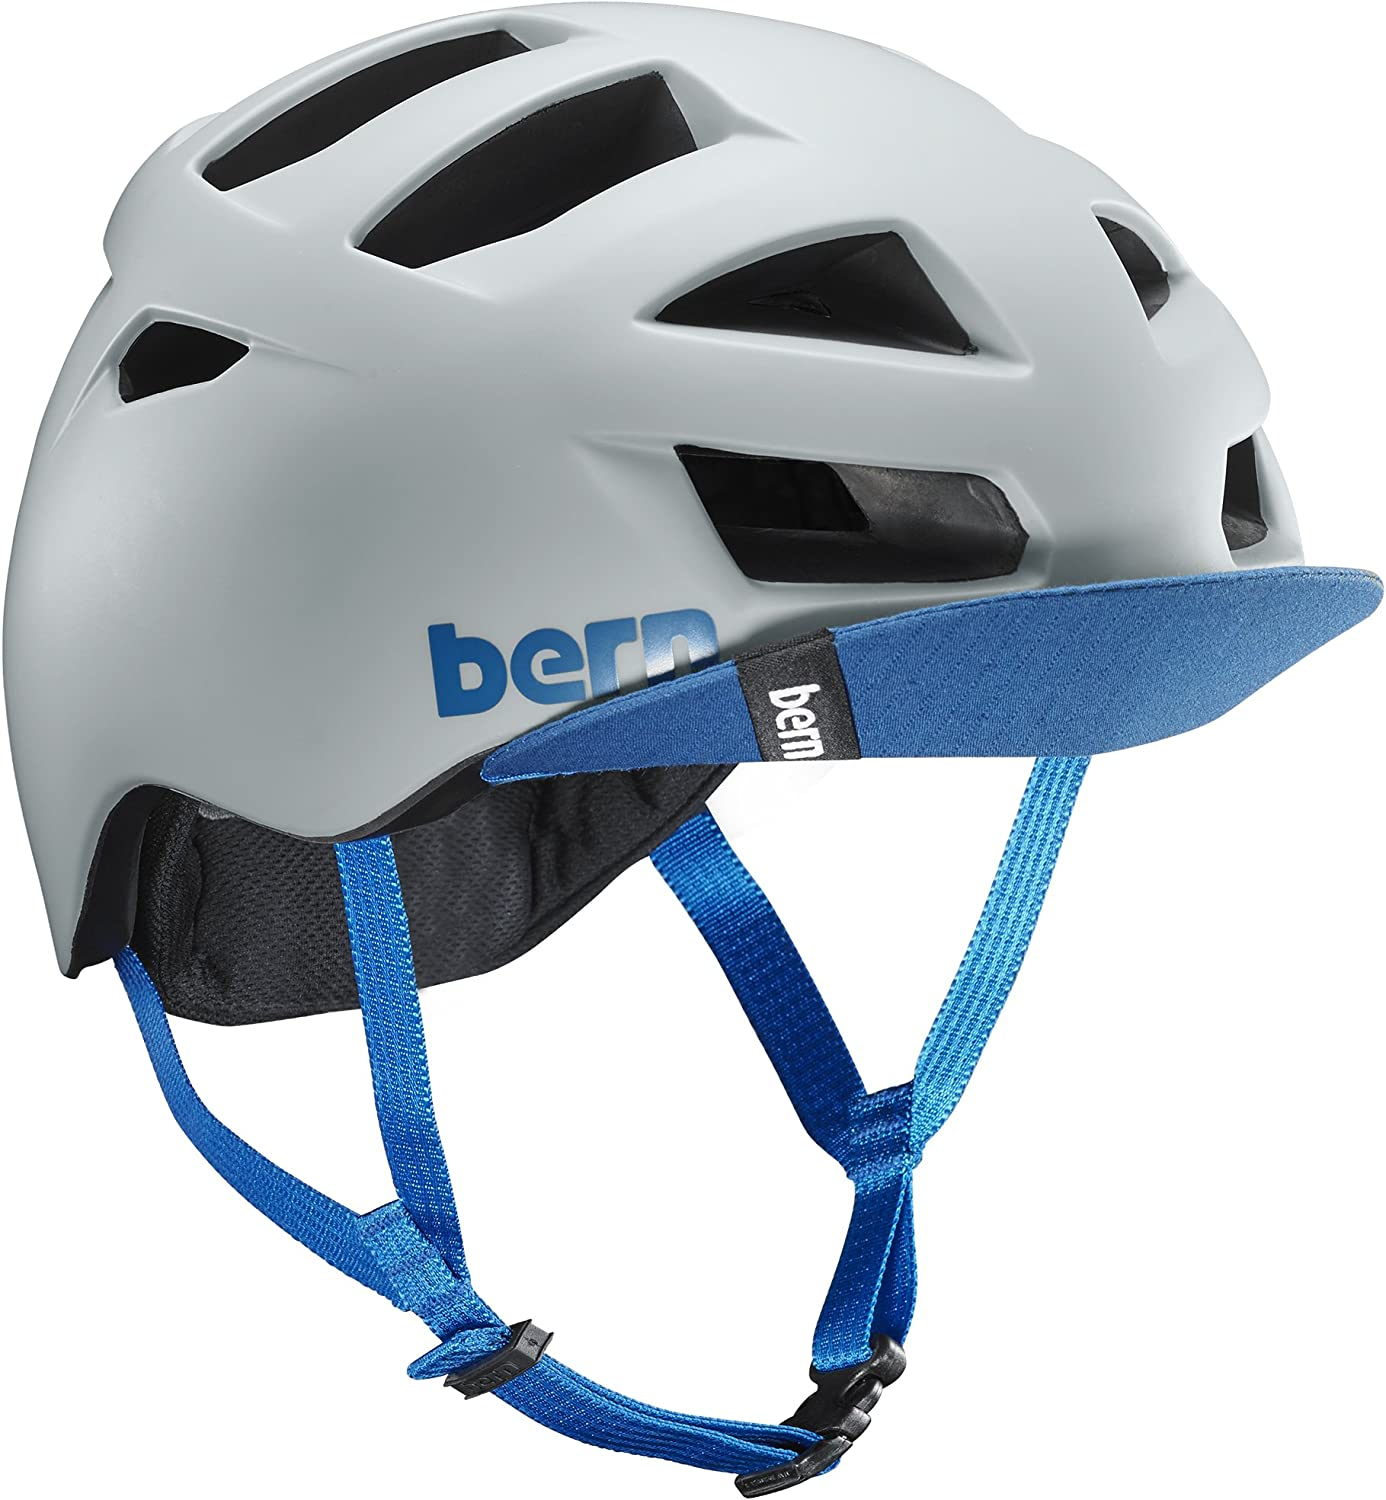 Bern 2016 Men s Allston Summer Bike Helmet w Visor